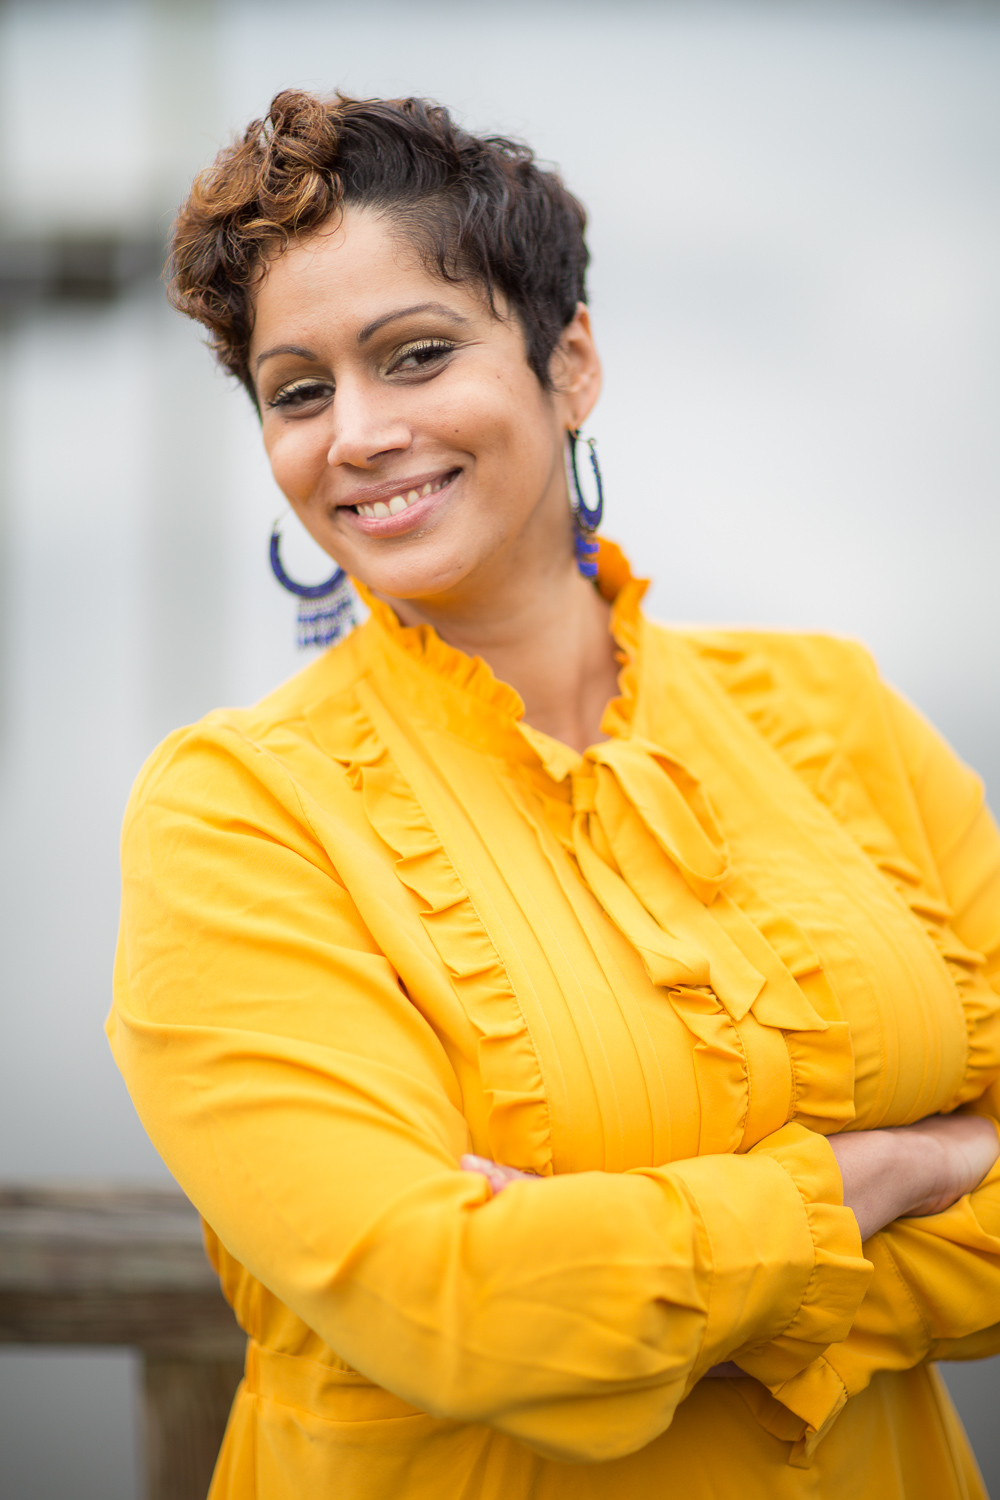 Jana Jones Halls is the Executive Director of the BRC on the Prevention of Youth Violence. The BRC is a non-profit organization in Wilmington, North Carolina dedicated to creating pathways to success for the youth and families in the north downtown Wilmington community.